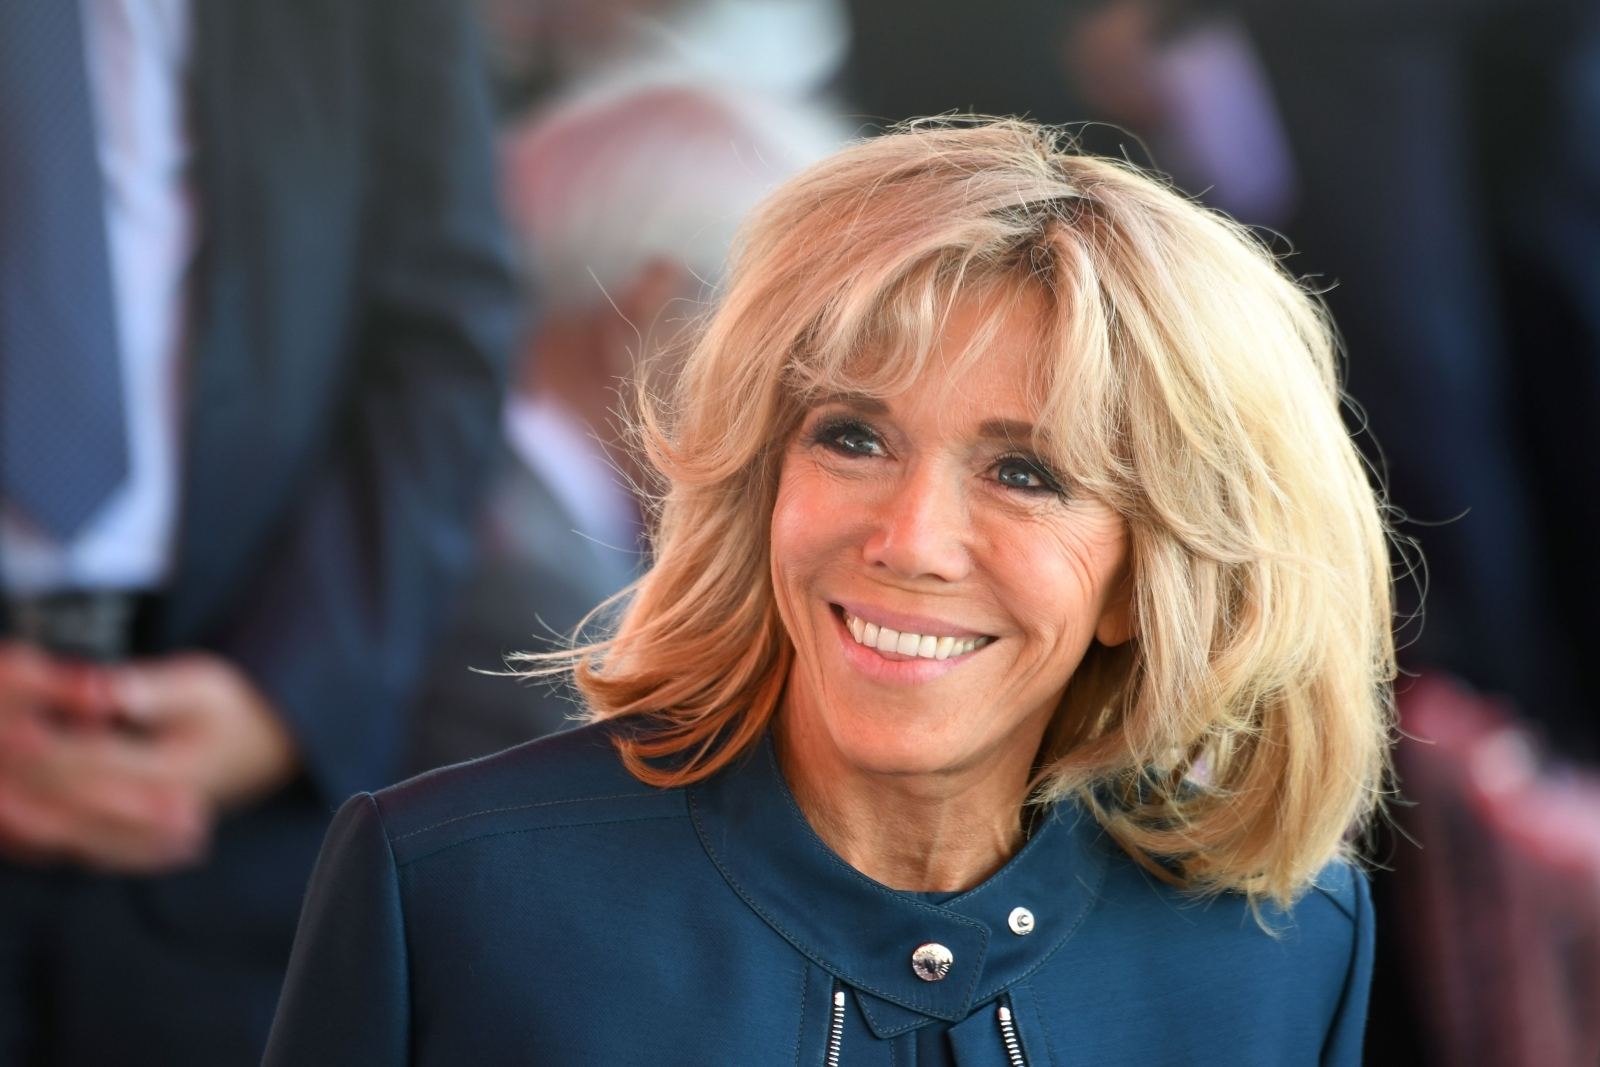 Brigitte Macron: 'I don't feel like a First Lady'